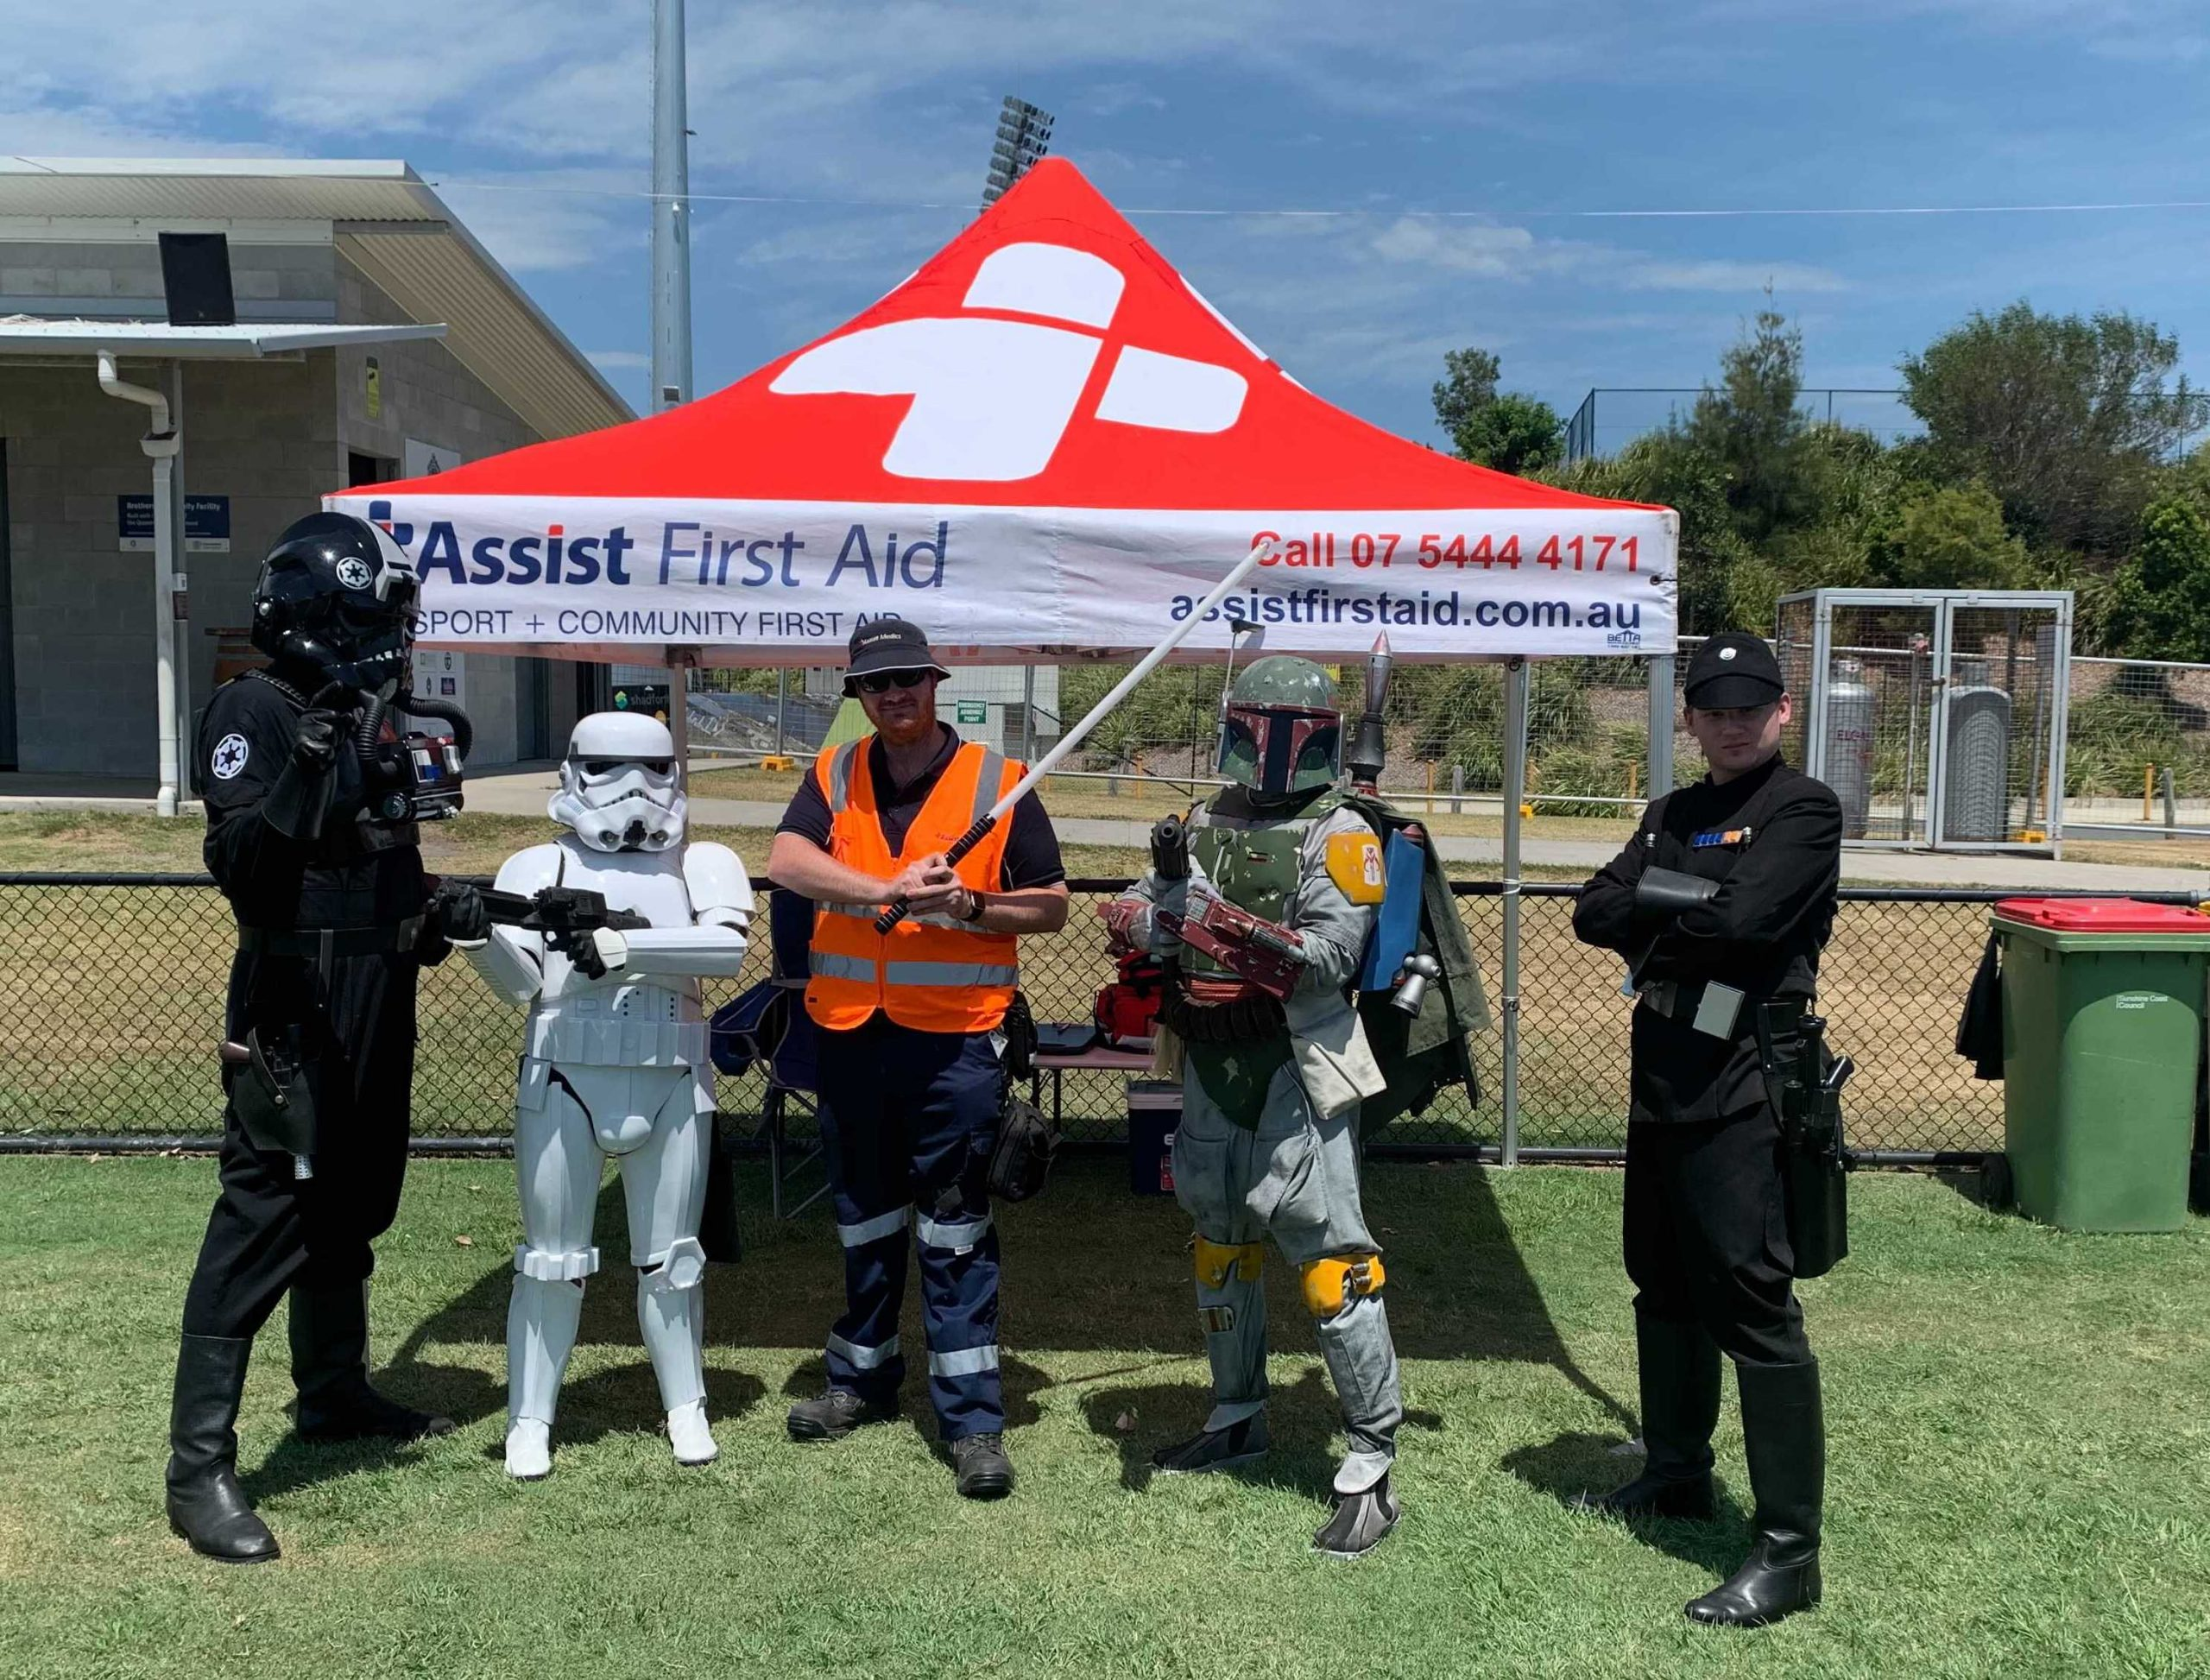 Assist Medical Event First Aid team with group of Superheros 2020